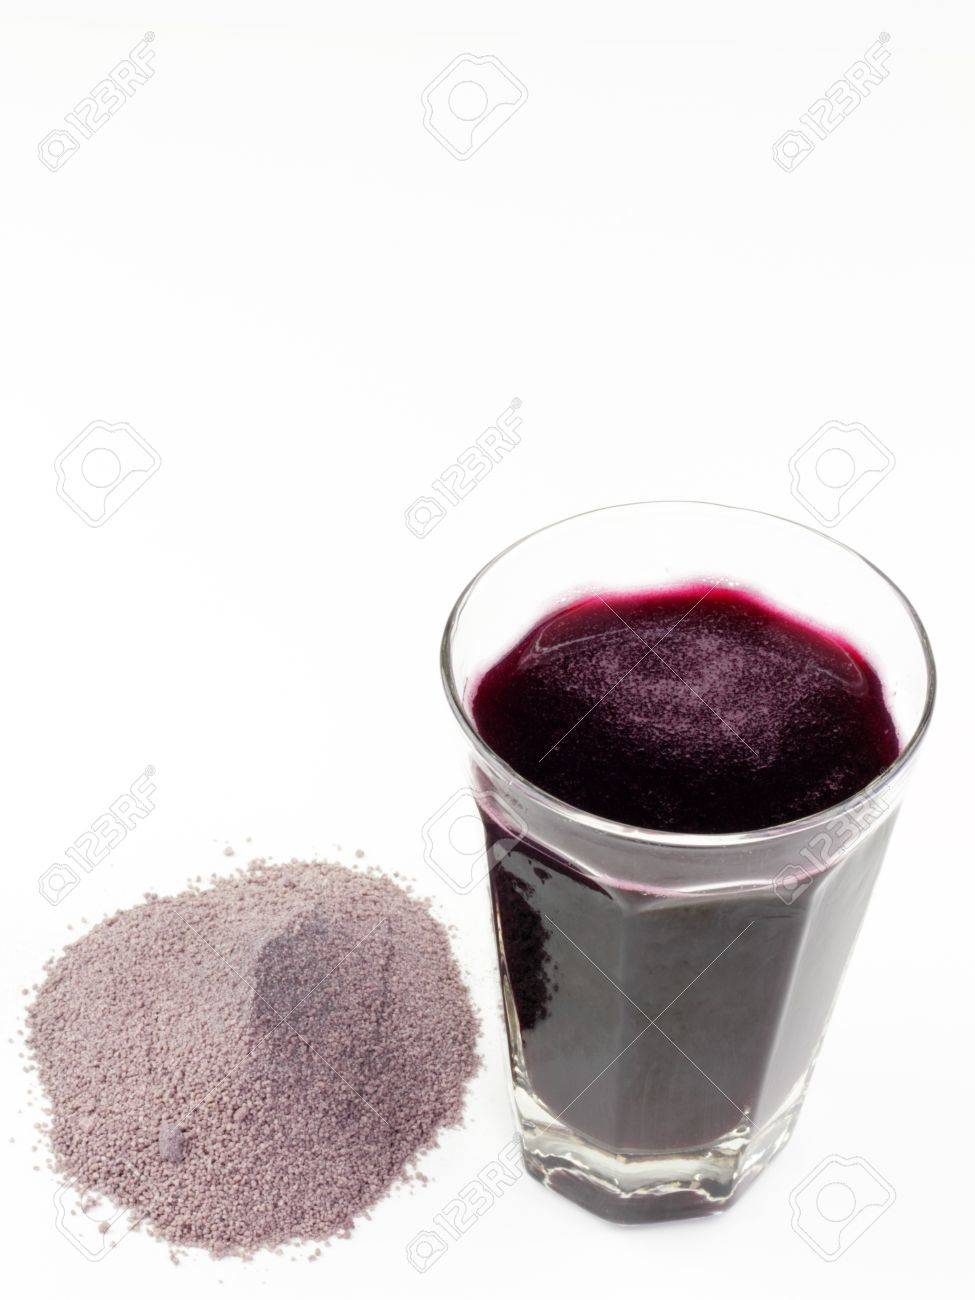 Violet purple dried and ground extract mix of berries and similar with a glass of the beverage made with water. Stock Photo - 9506763